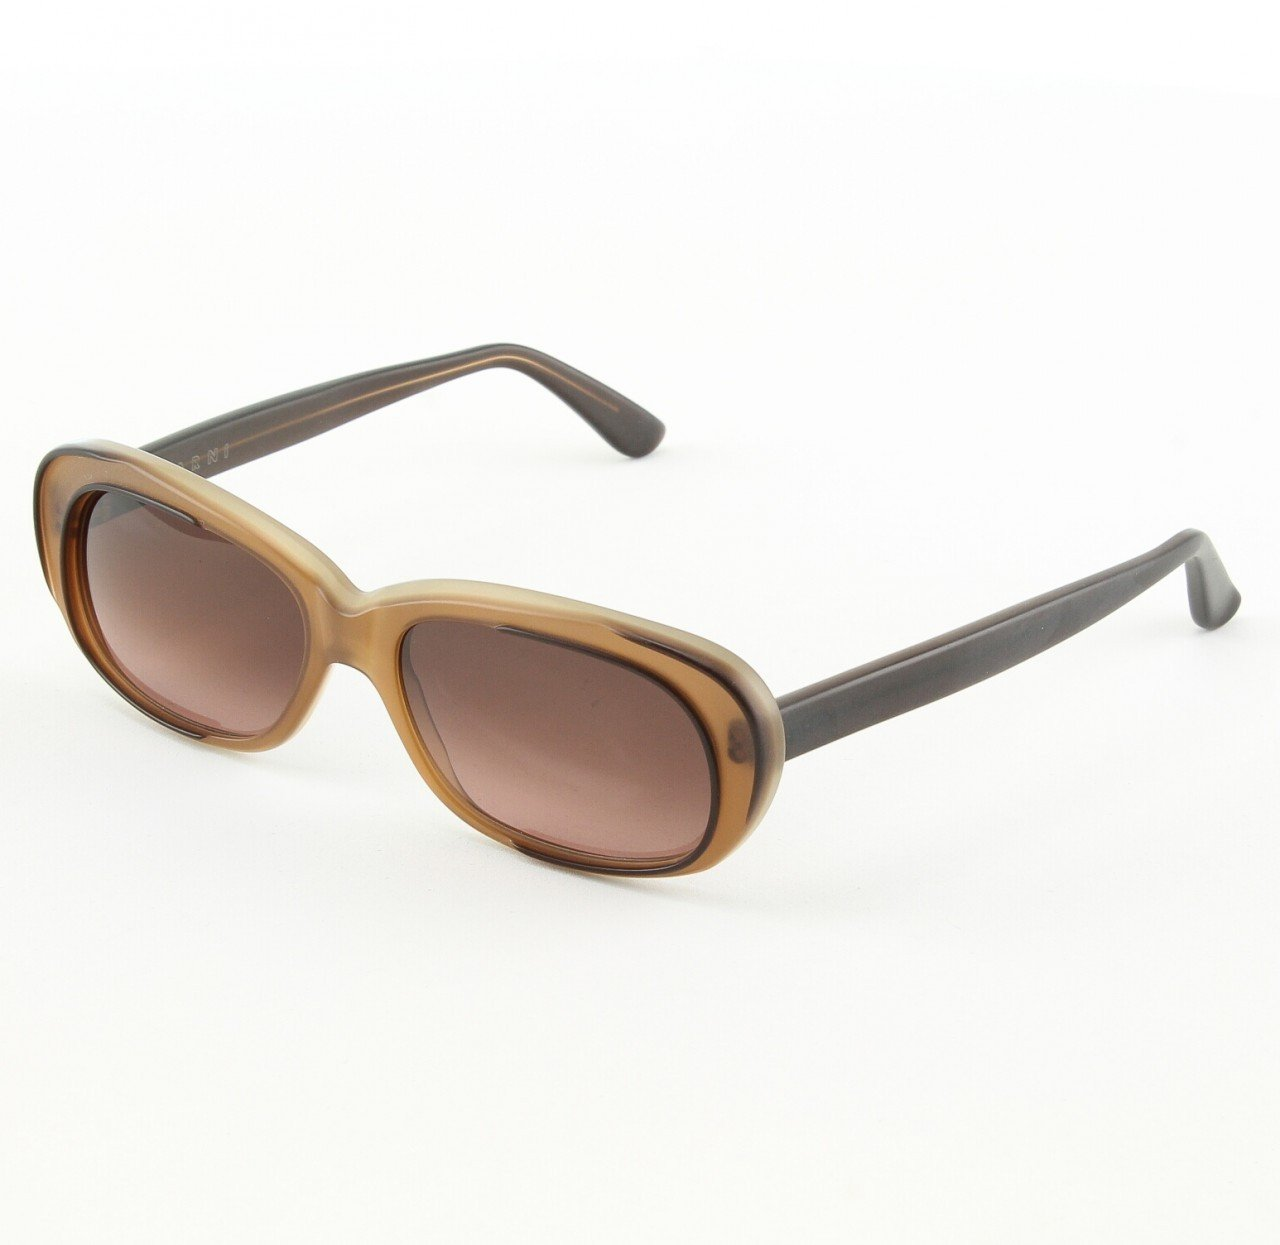 Marni MA174S Sunglasses Col. 04 Translucent Taupe w/ Graphic Grey Accents with Gray Gradient Lenses